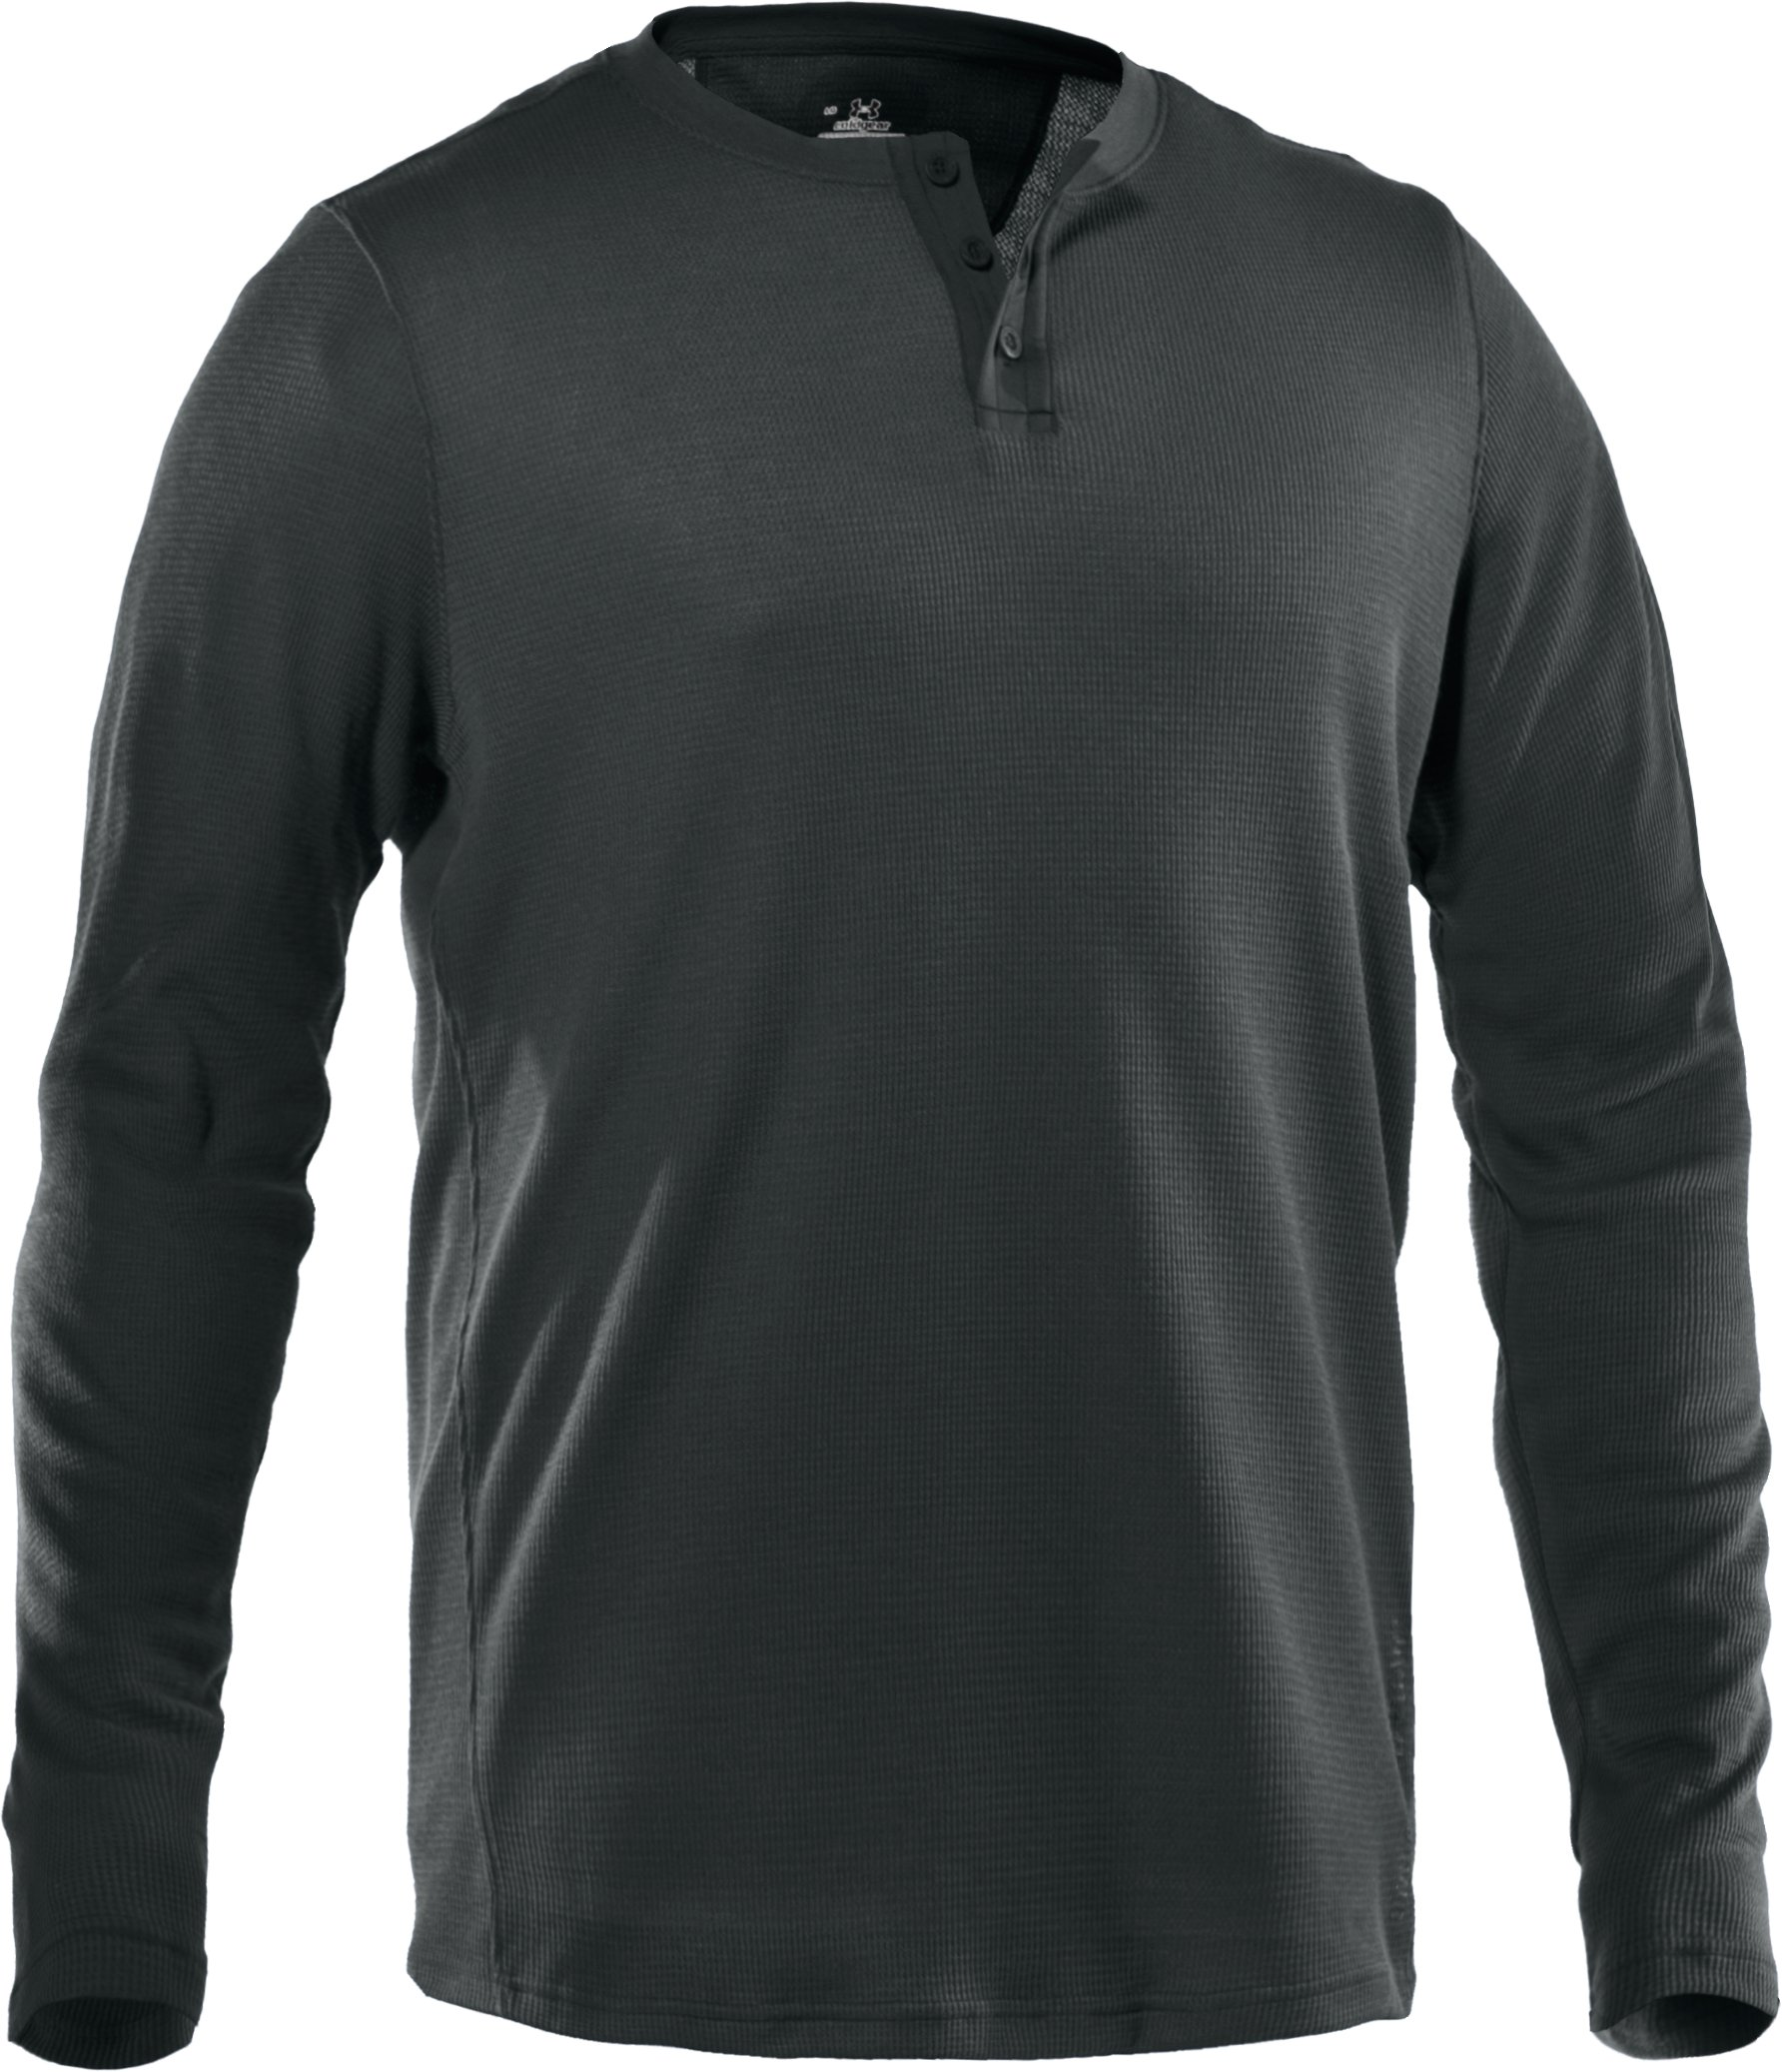 Men's Long Sleeve Waffle Henley Shirt, Battleship,